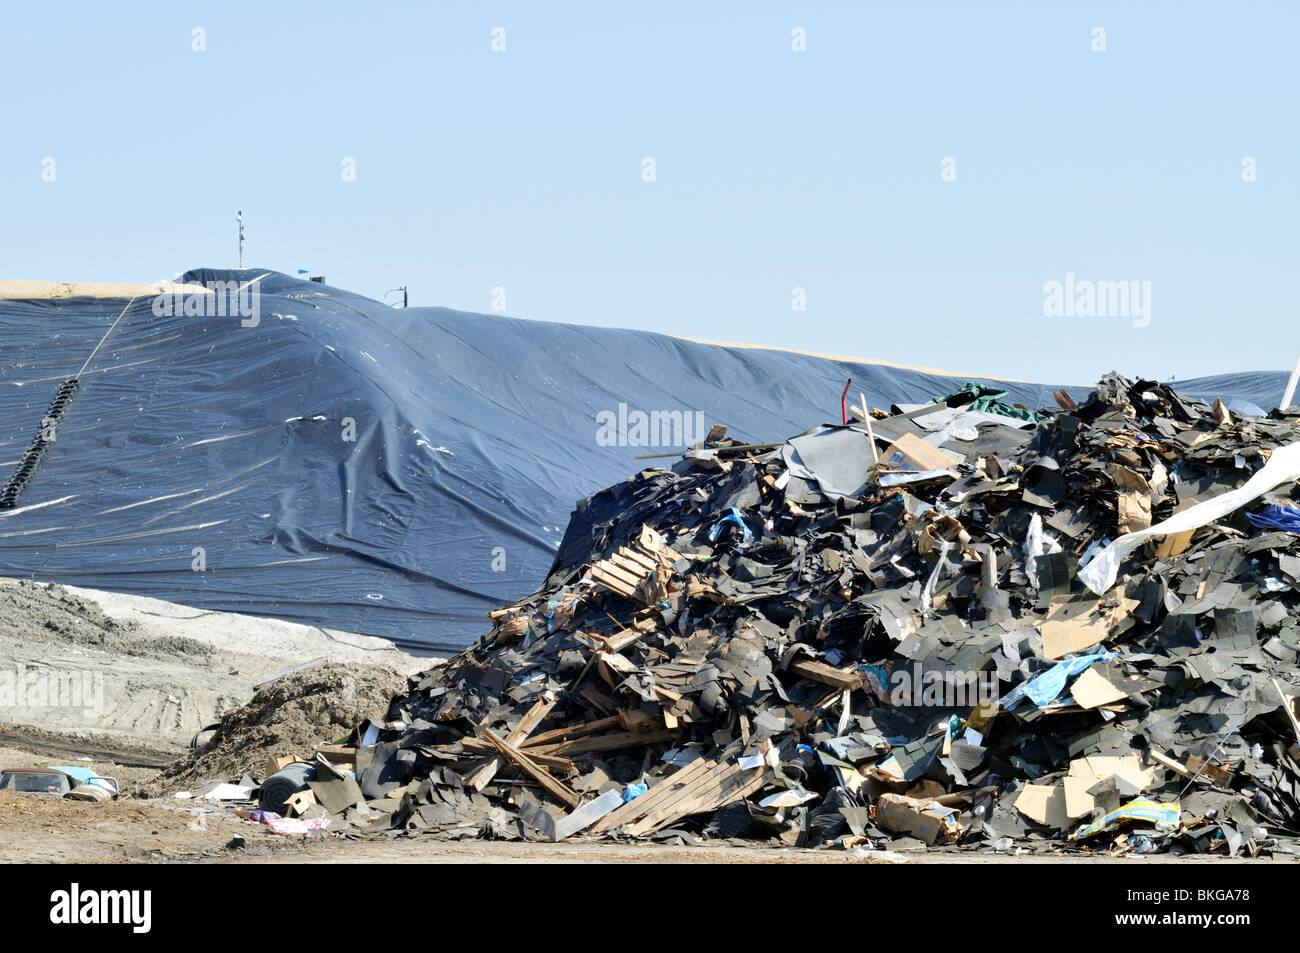 Landfill dump with pile of trash and commercial construction debris with plastic capping  US - Stock Image